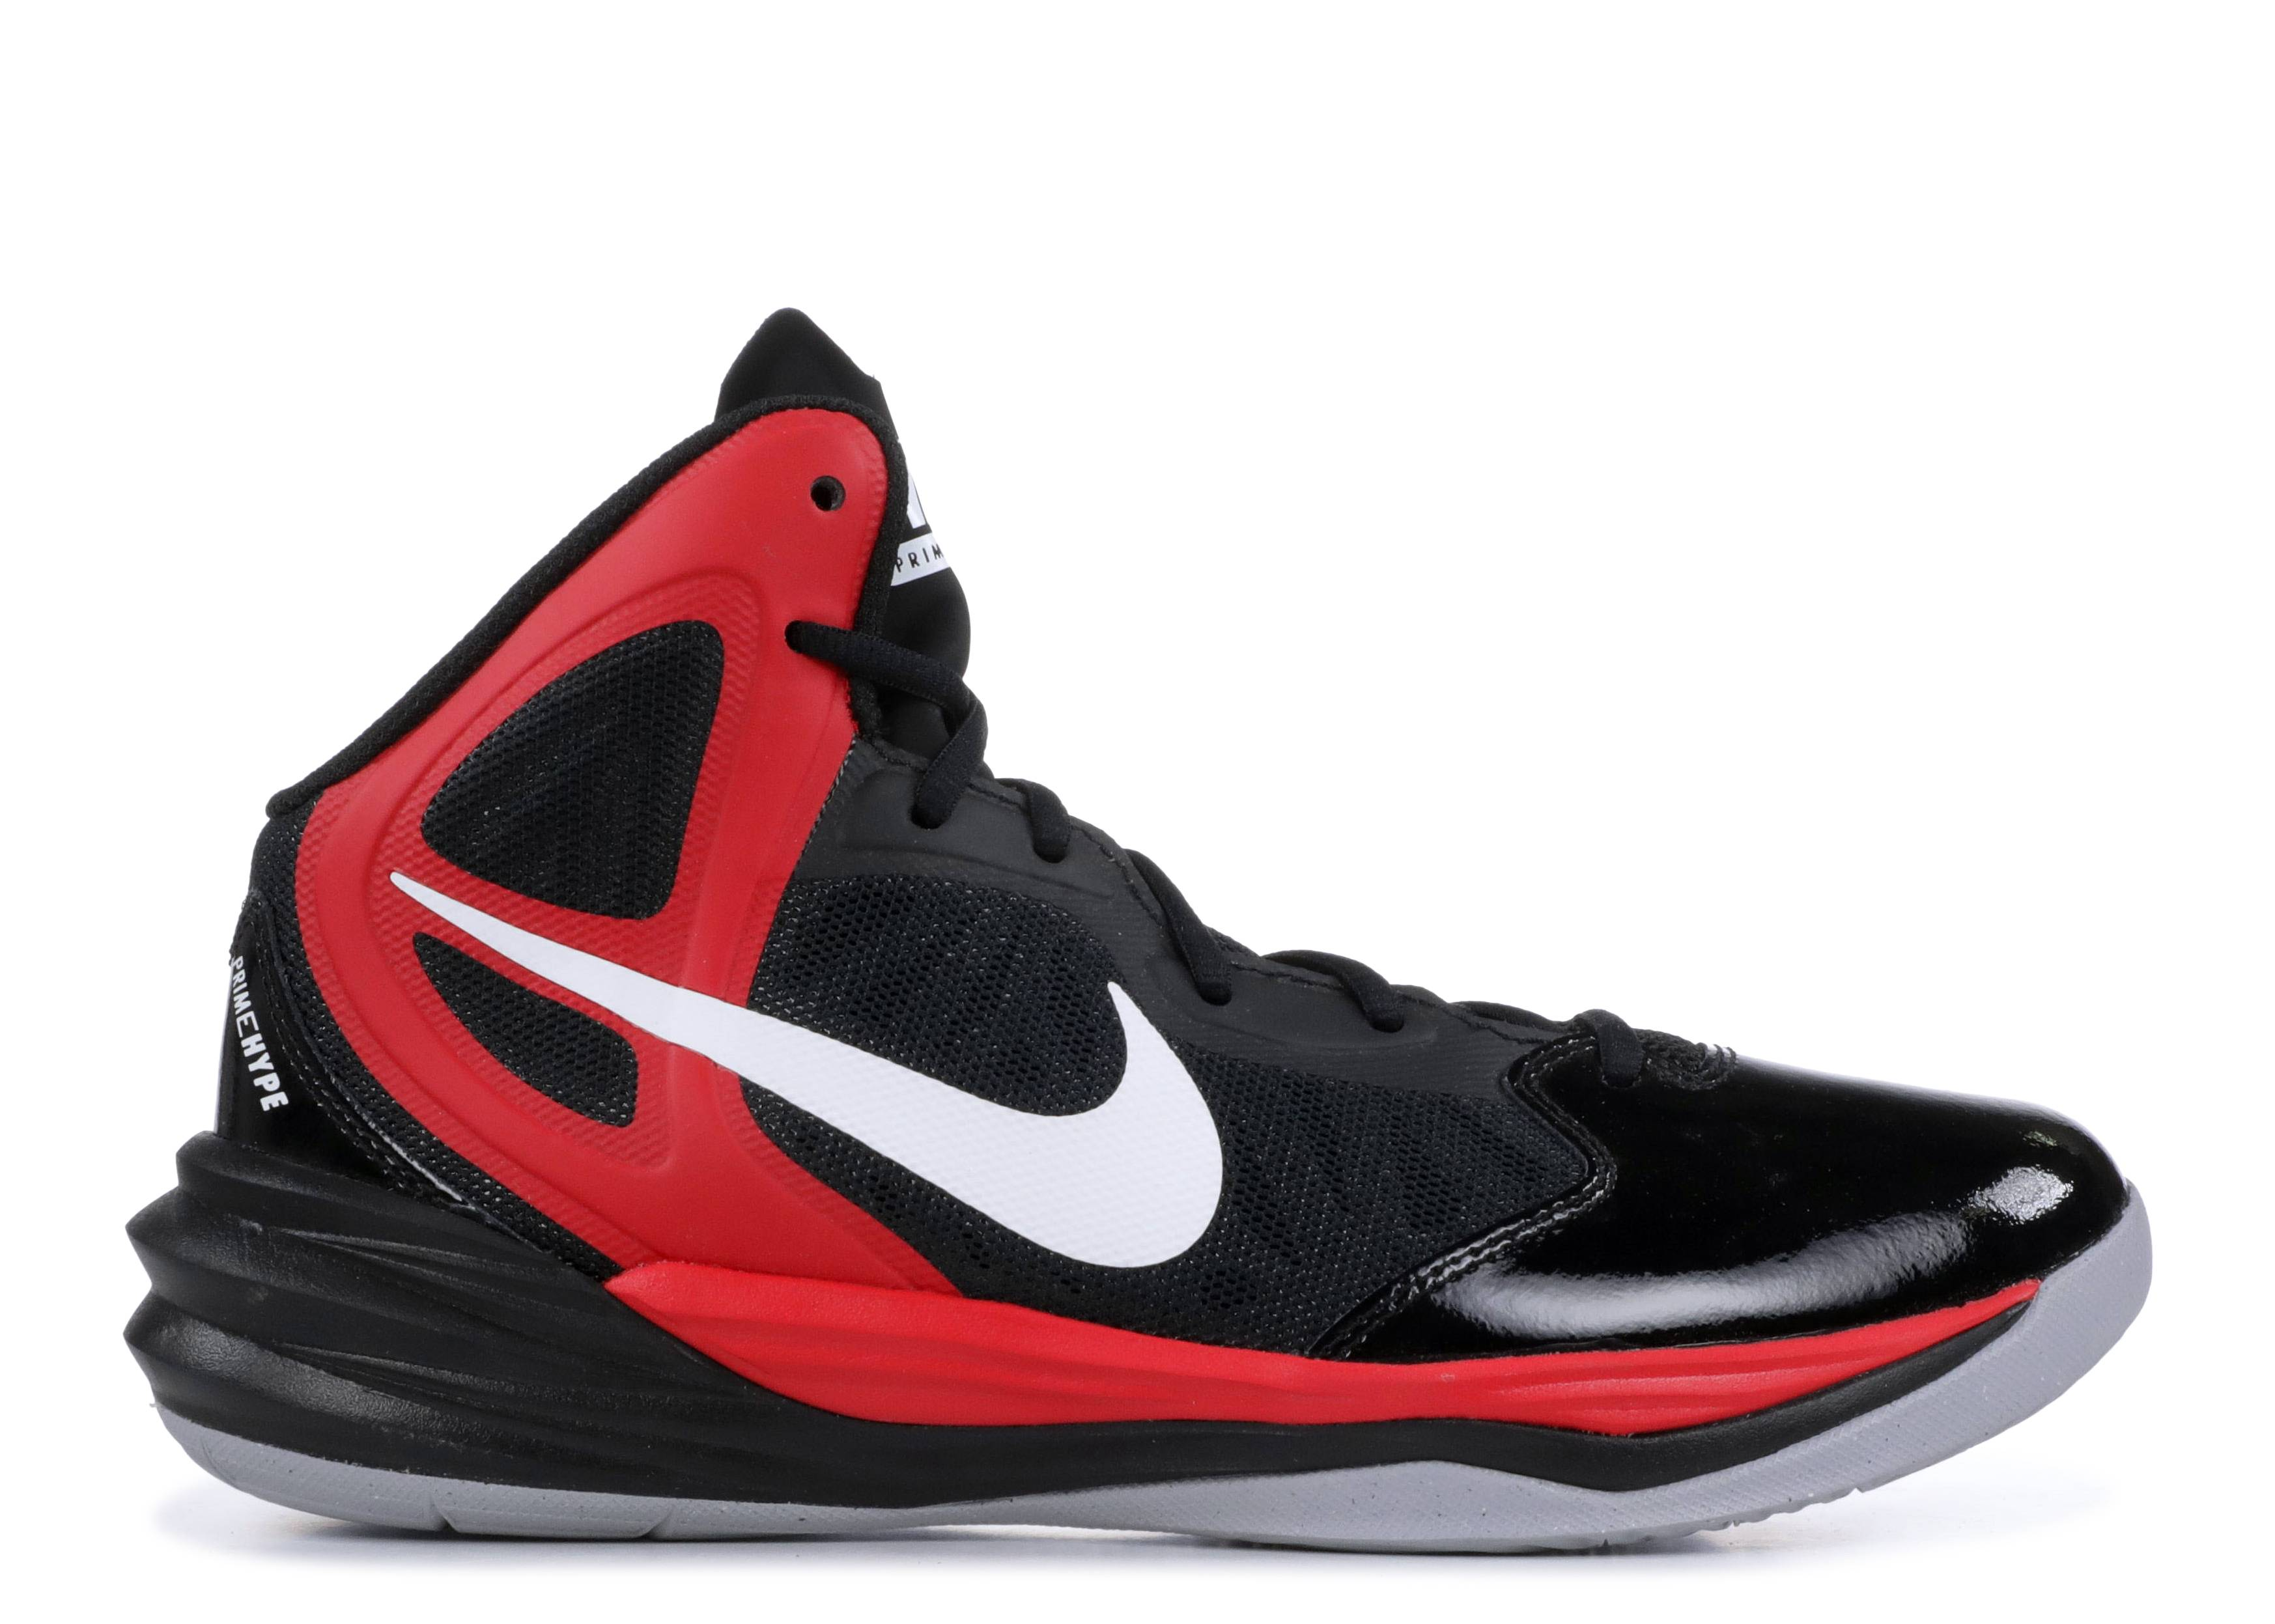 0d30f7d1fbb Nike Prime Hype Df - Nike - 683705 006 - black white-universty red ...